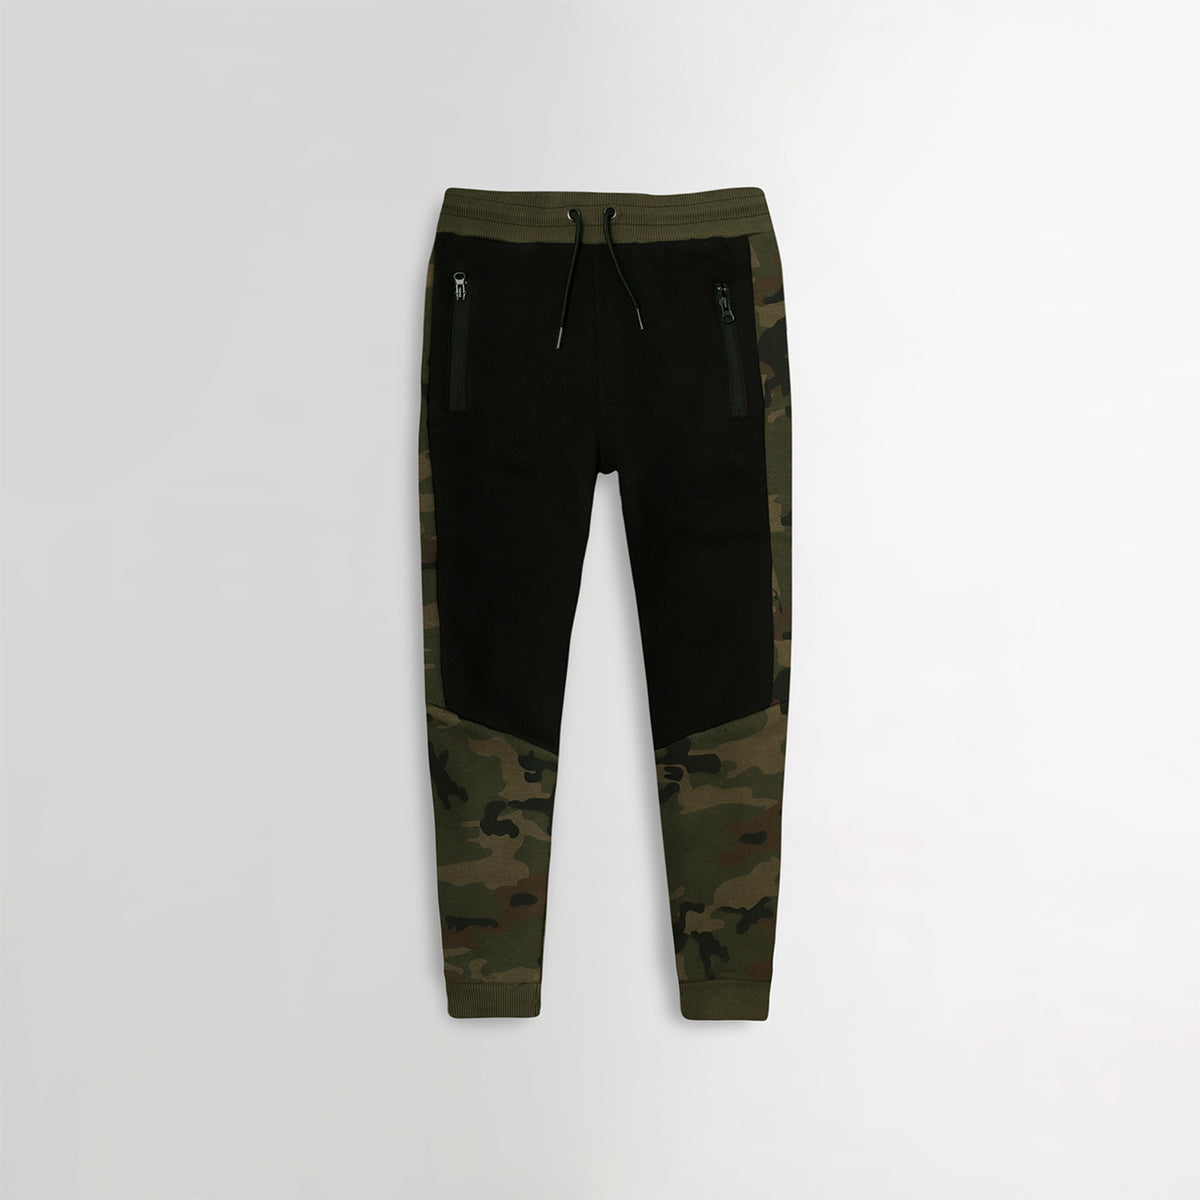 Older Boys Camo Paneled Zip Pocket Close Bottom Joggers  (PR-10317)